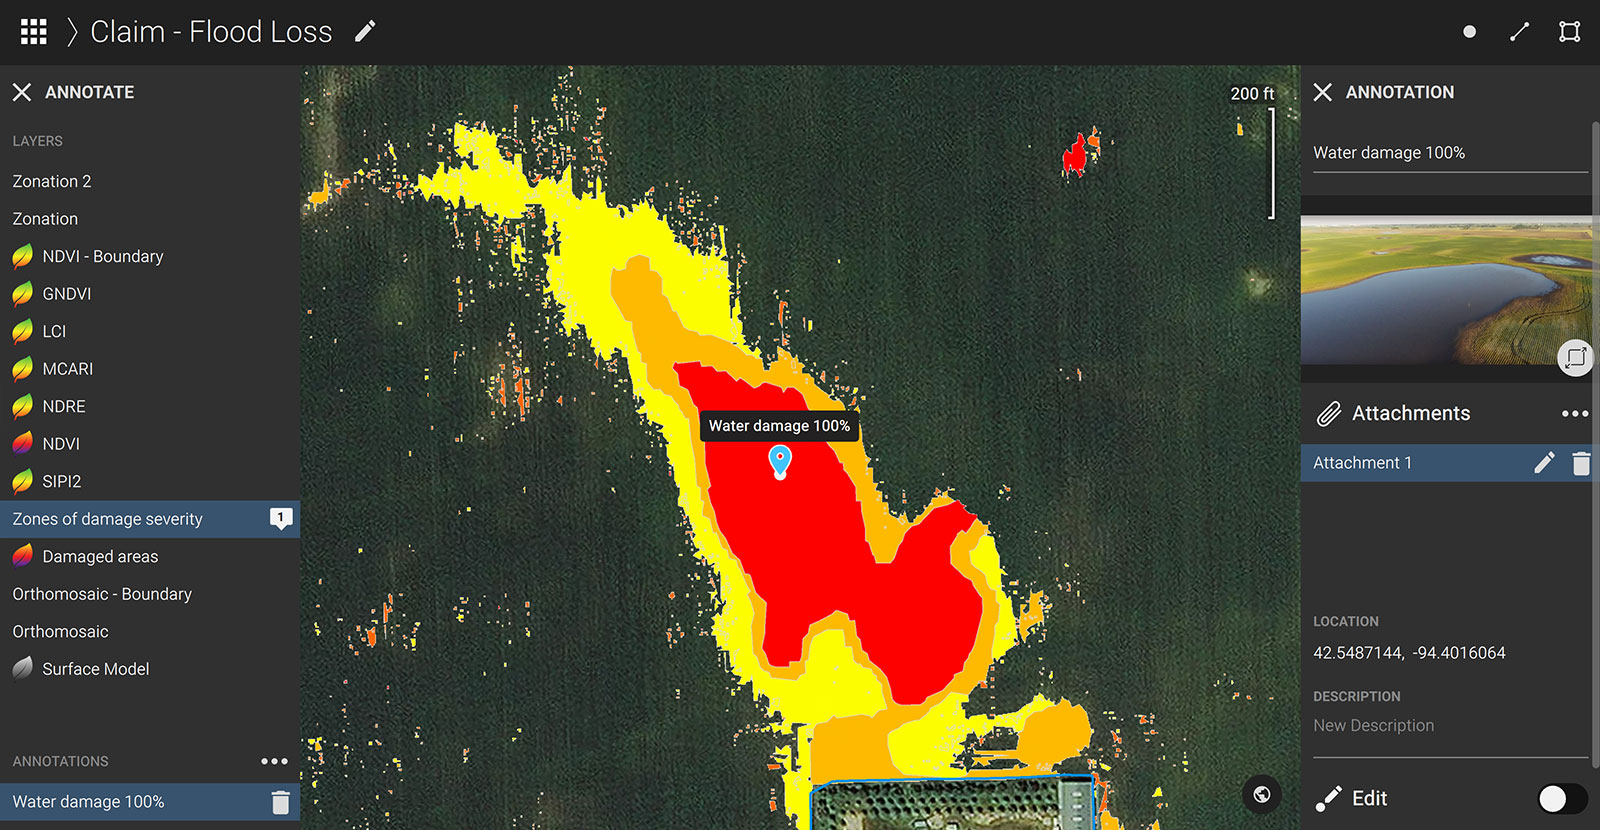 Annotation tool in Pix4Dfields with attached images of the damaged areas from the field